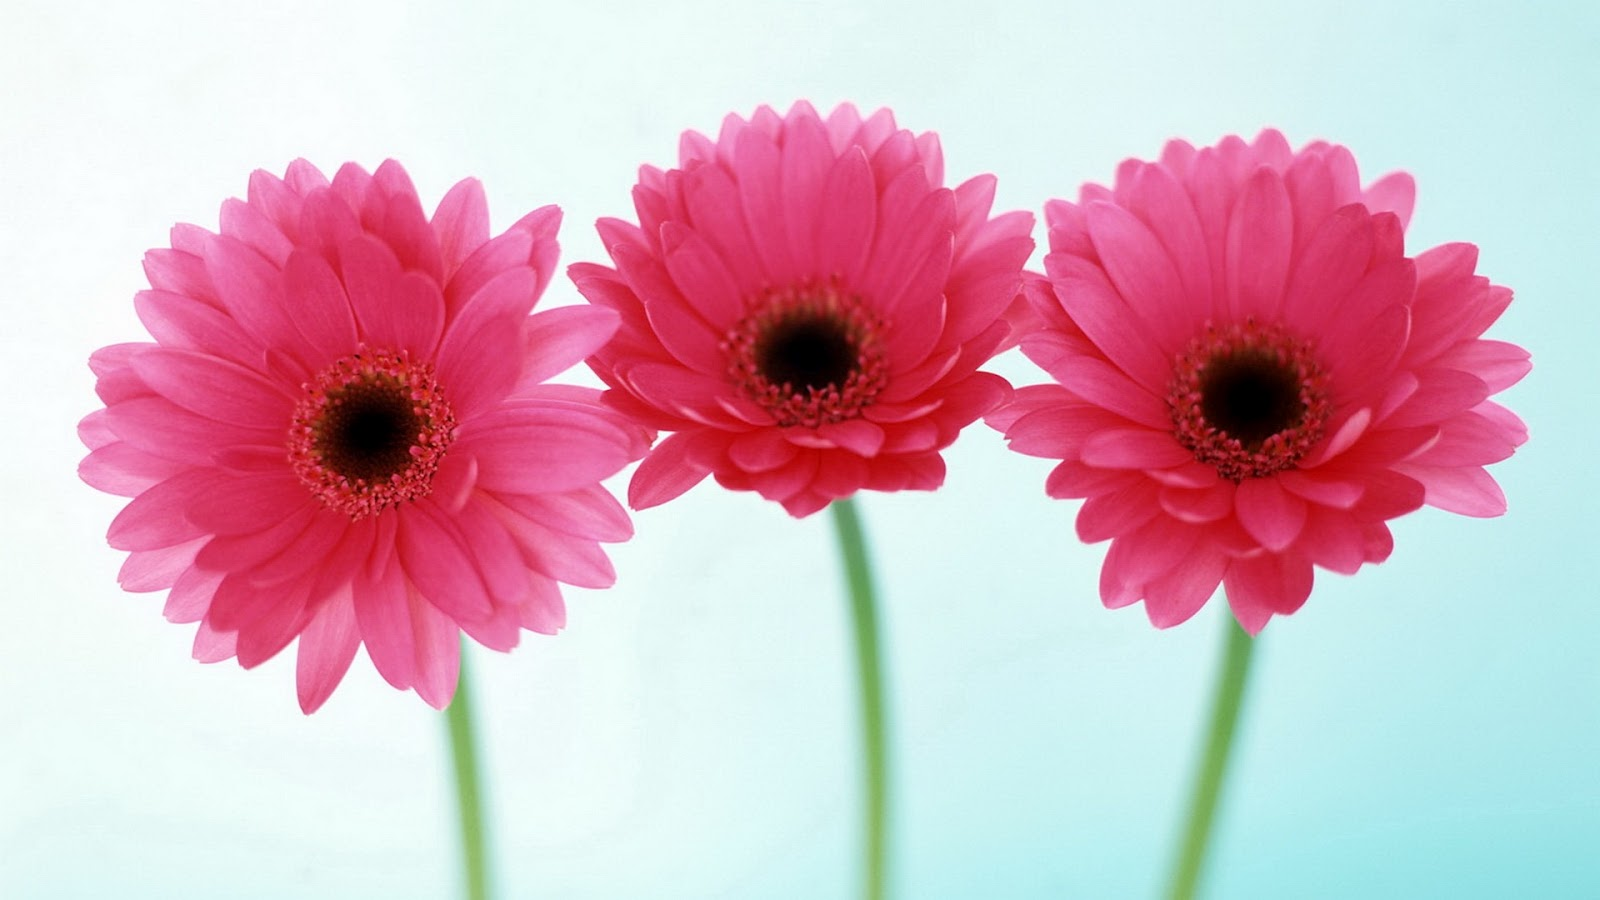 wallpaper pink flowered flower - photo #21